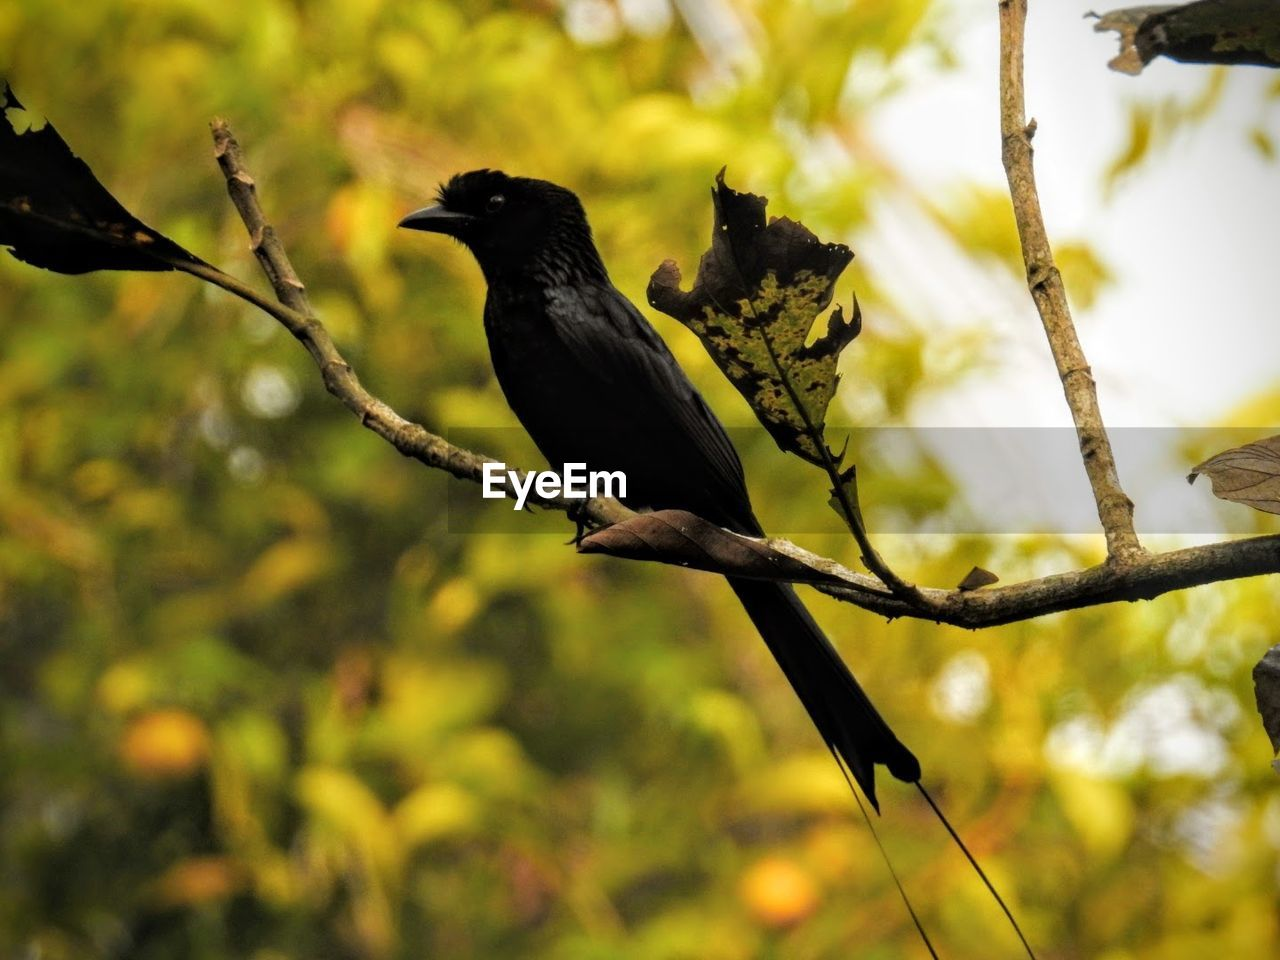 bird, animals in the wild, animal themes, perching, one animal, crow, animal wildlife, nature, blackbird, focus on foreground, branch, no people, black color, raven - bird, tree, day, outdoors, close-up